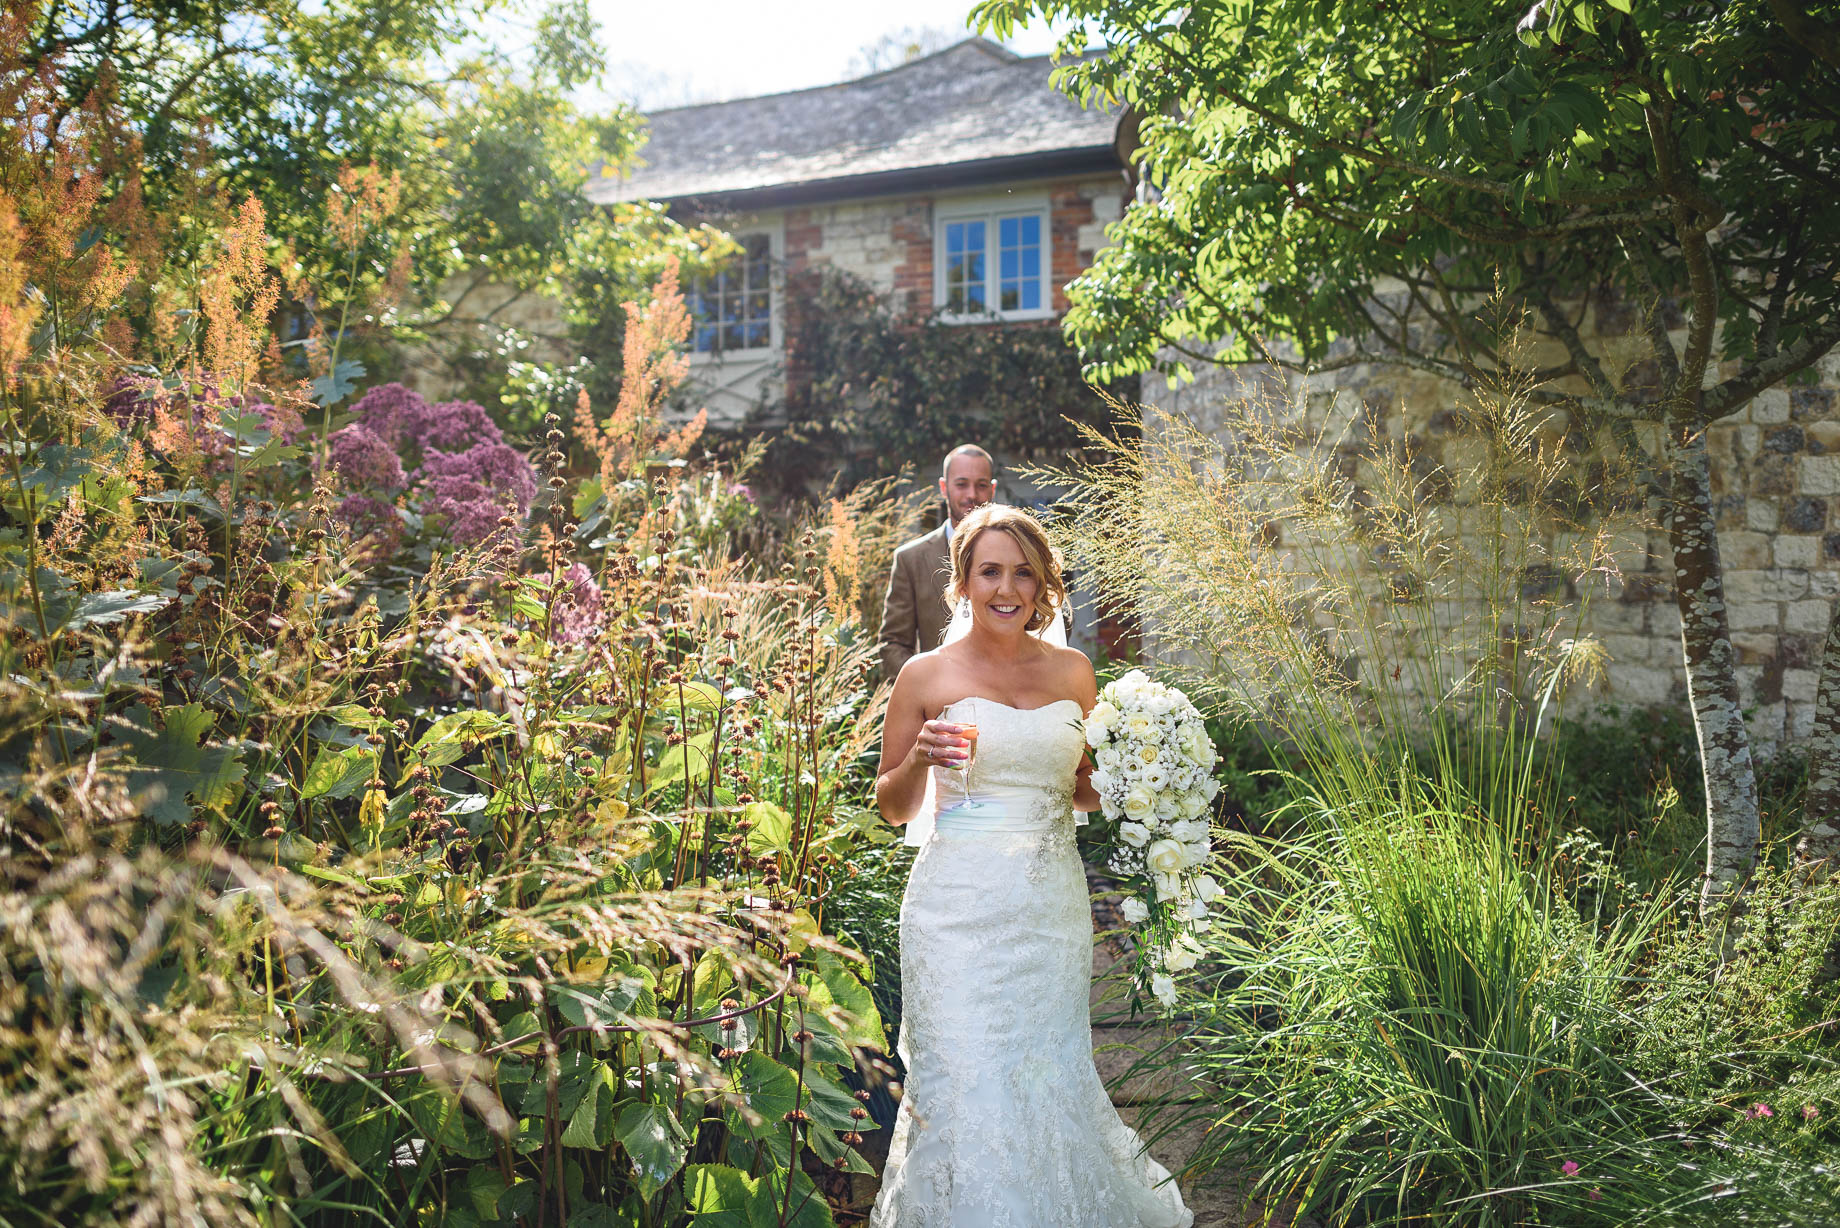 Bury Court Barn wedding photography - Guy Collier - Kate and Russ (83 of 187)